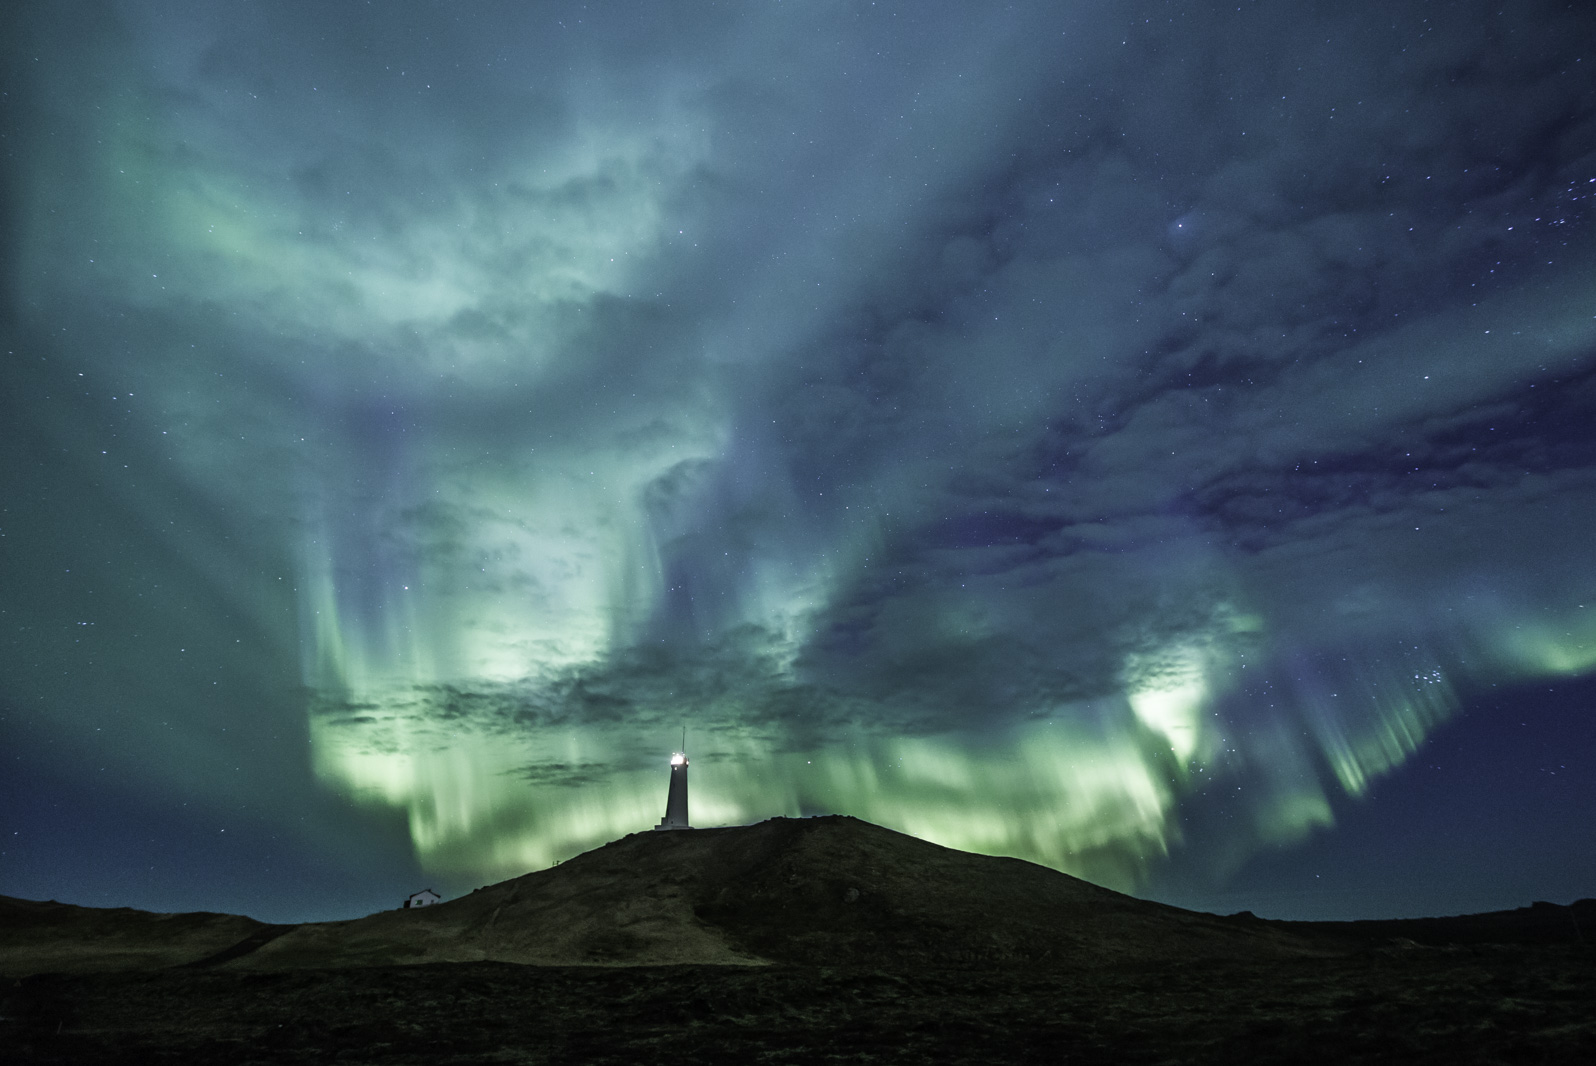 sky filled with blue and green northern lights in iceland